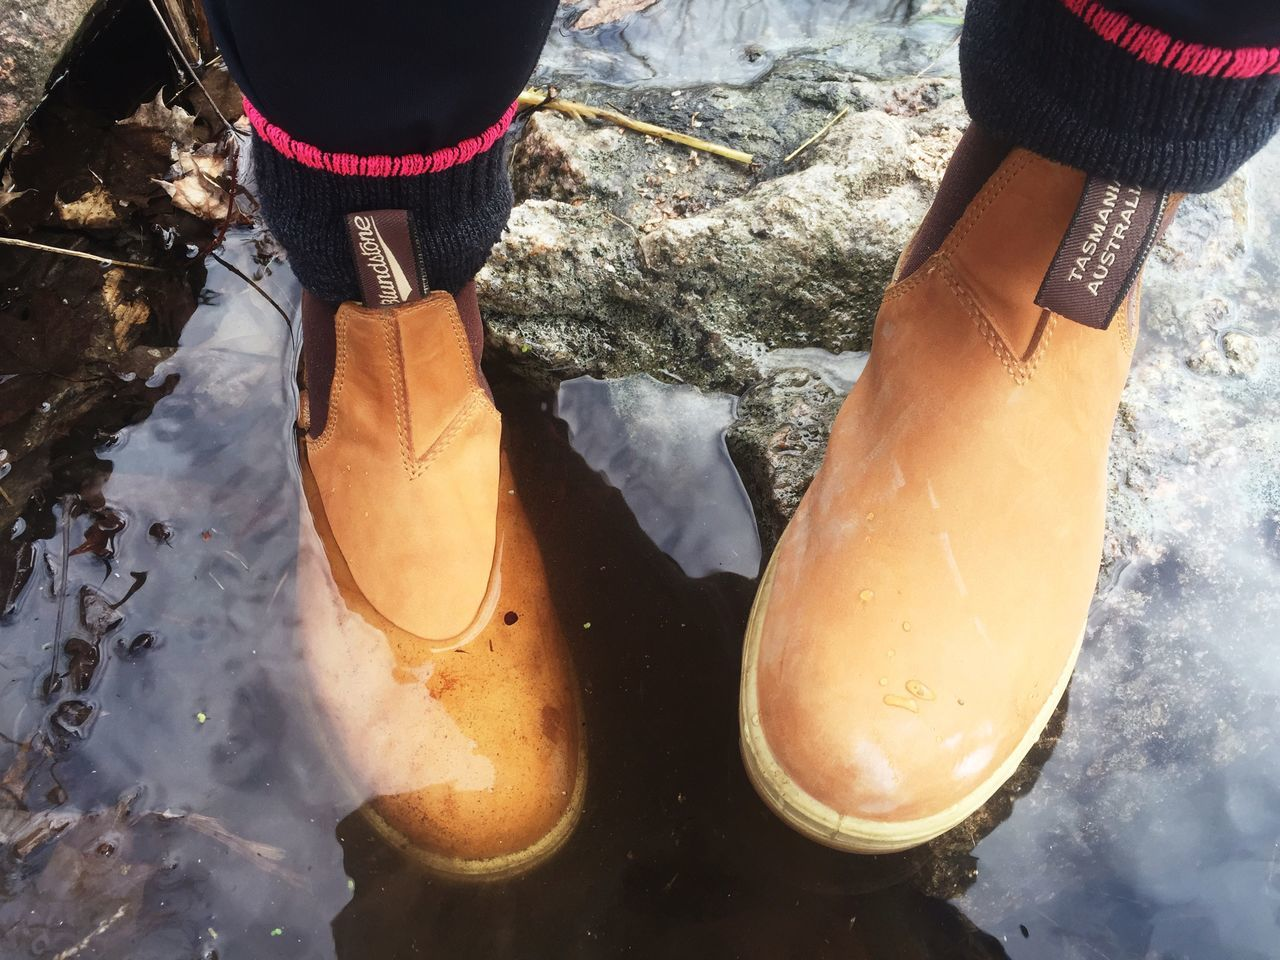 My Blundstone Boots waterproof and comfy....